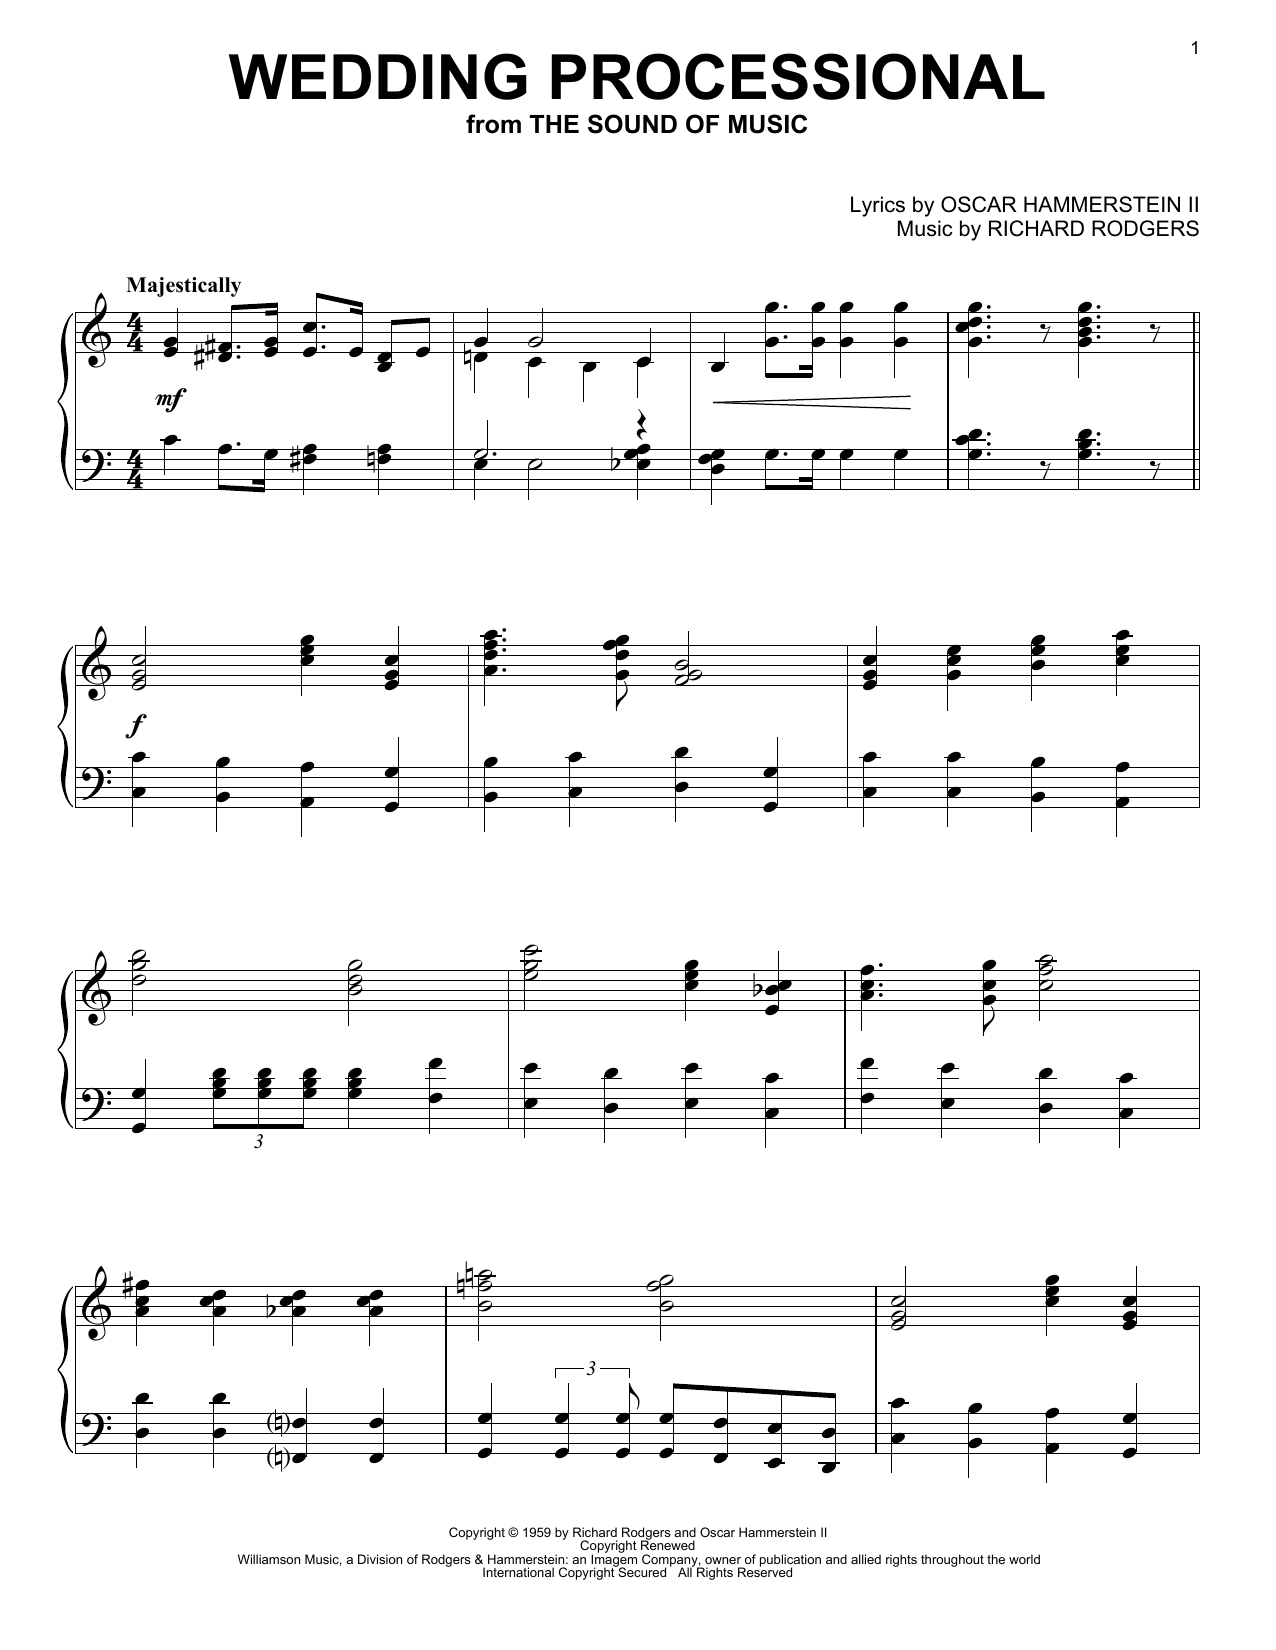 Rodgers & Hammerstein Wedding Processional sheet music notes and chords